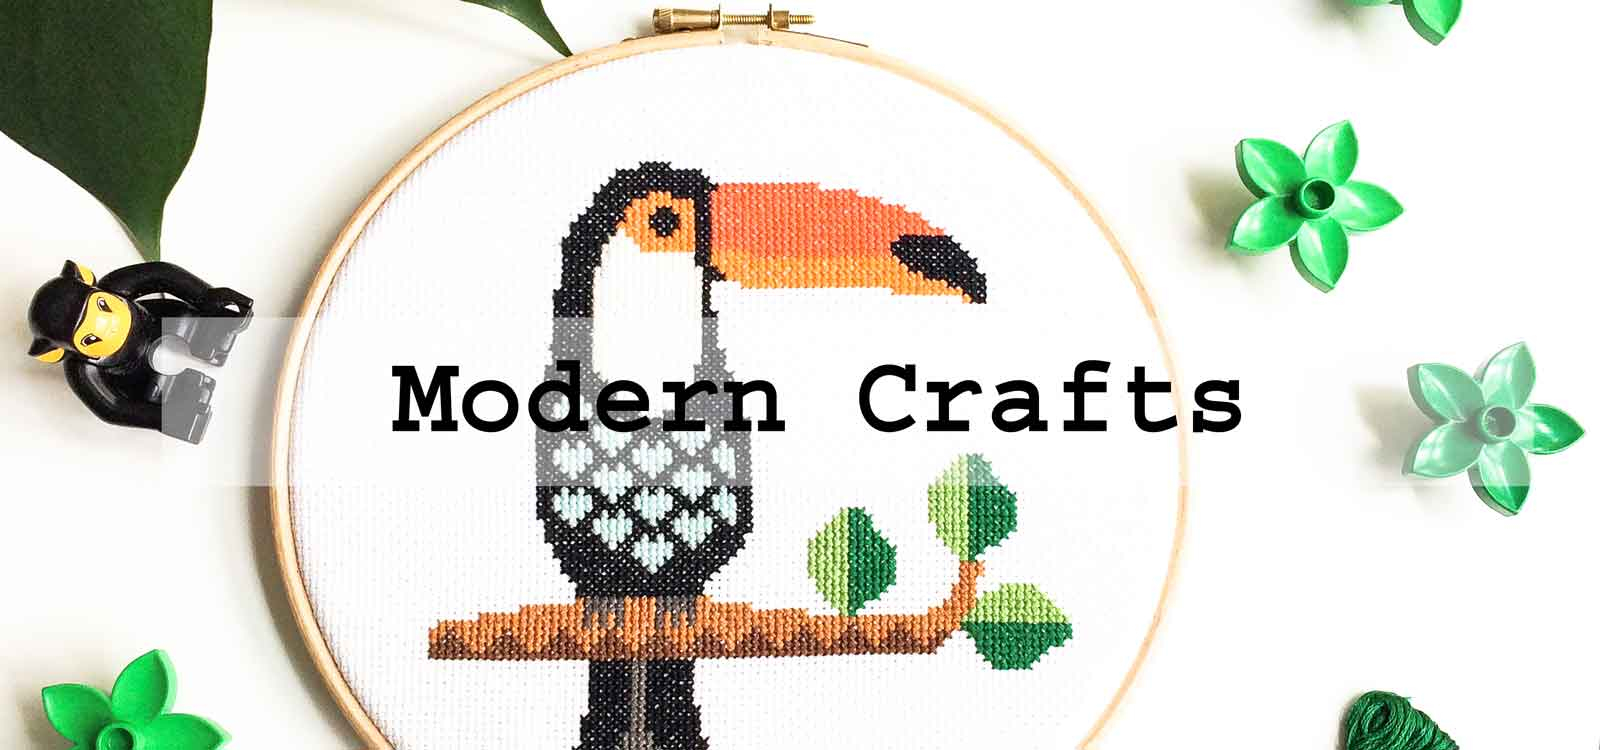 Embroidery For Beginners Free Patterns Modern Cross Stitch And Punch Needle Supplies Studio Koekoek